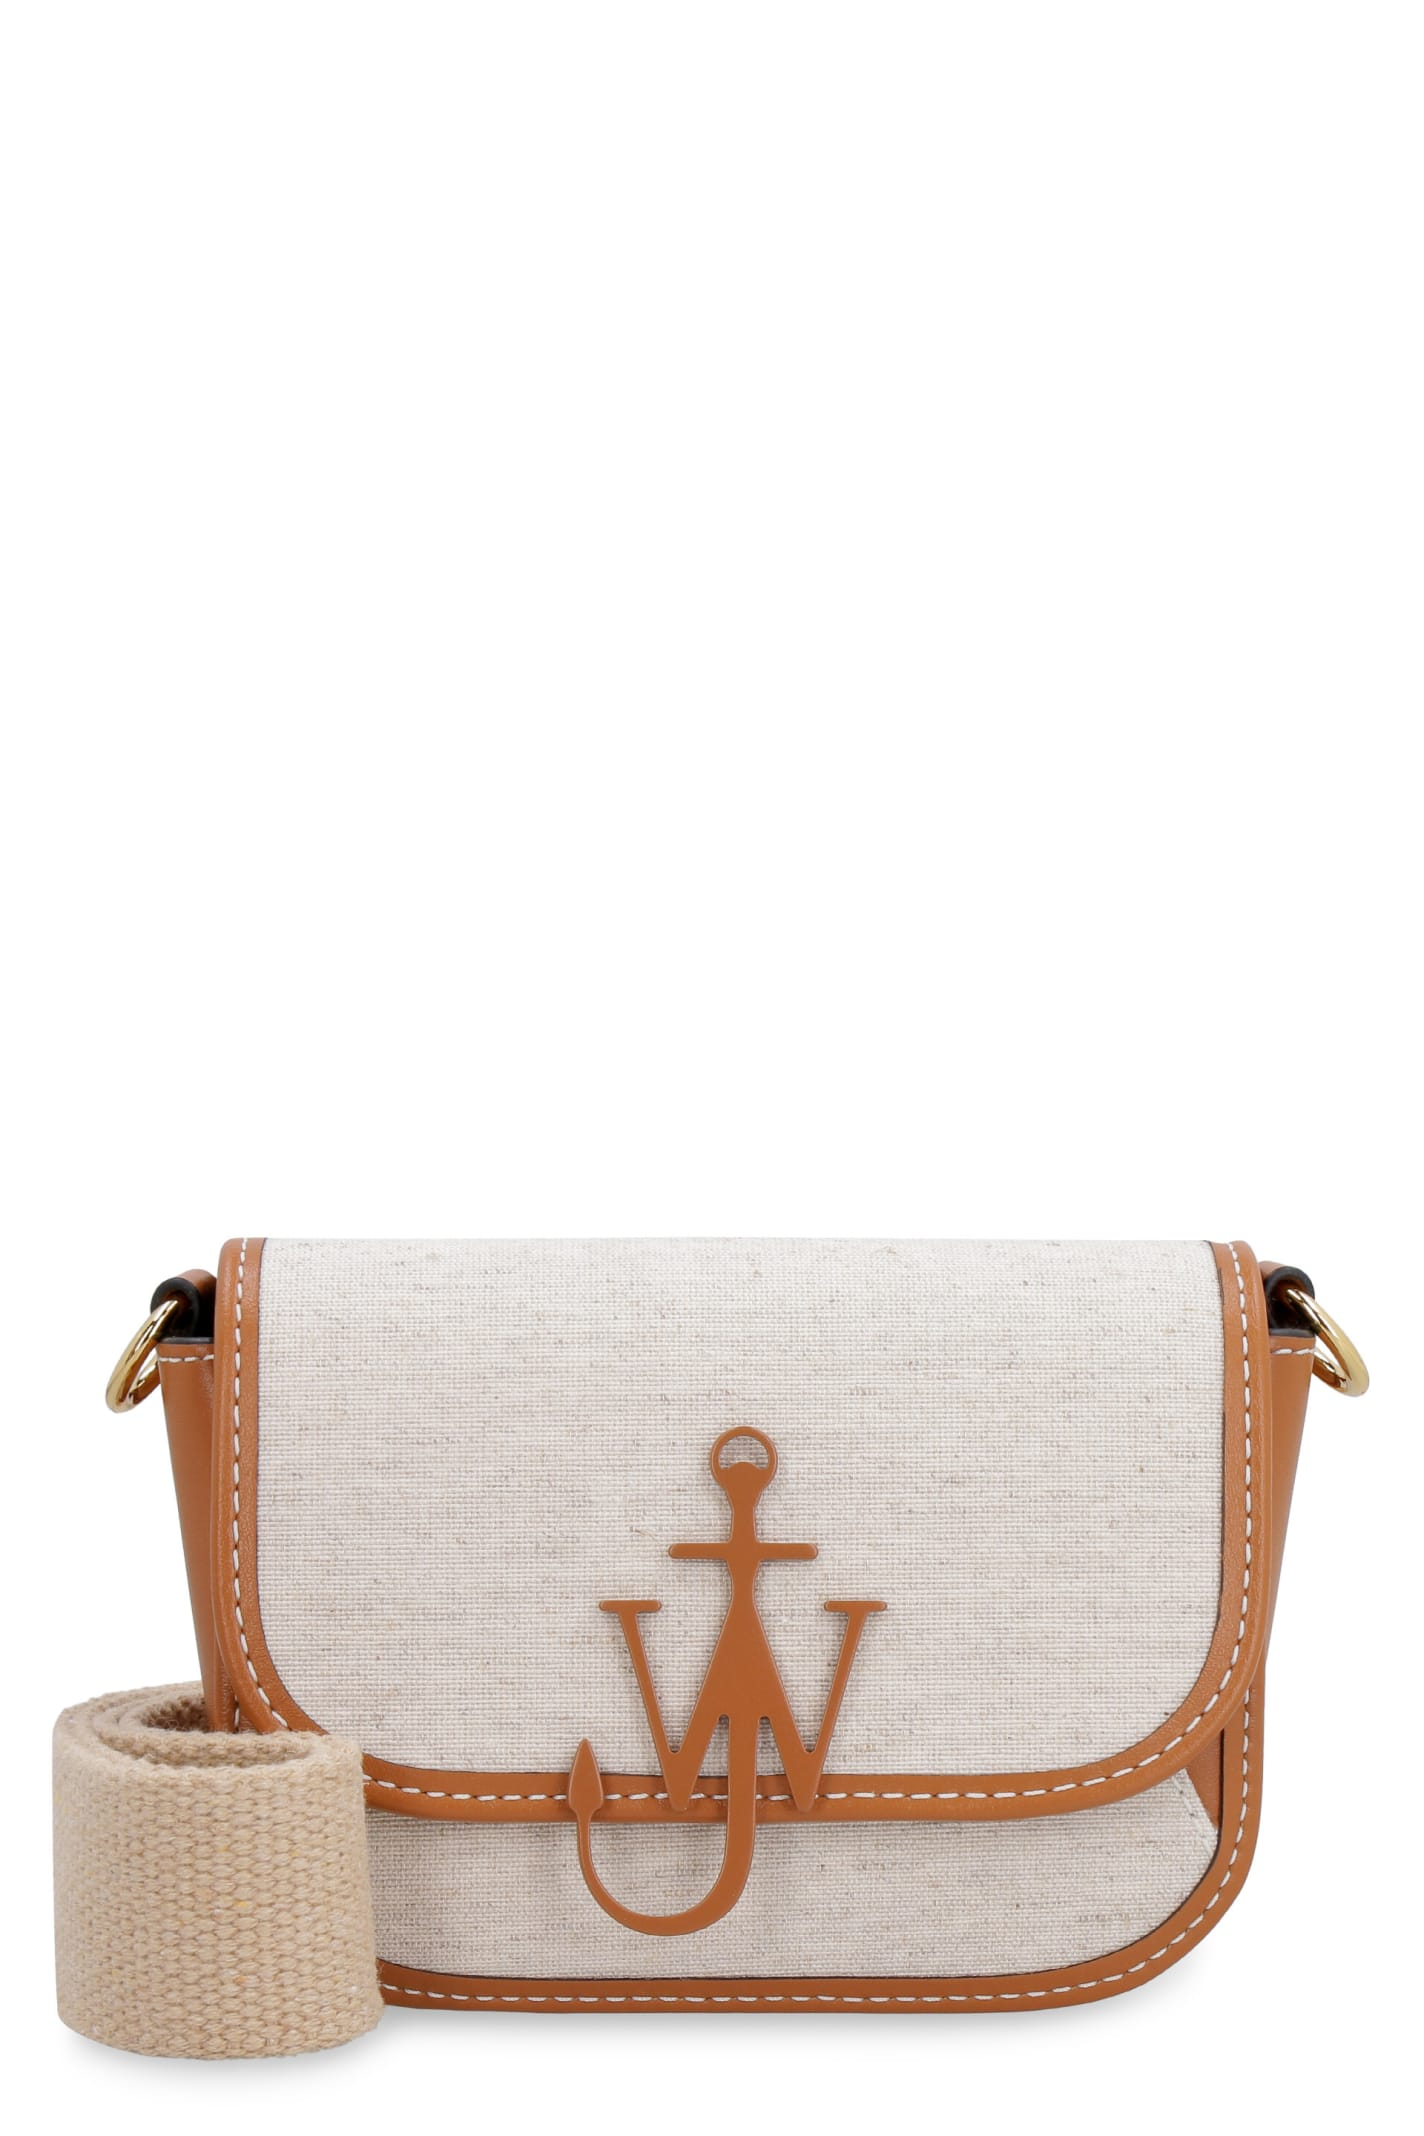 Jw Anderson NANO ANCHOR CANVAS AND LEATHER CROSSBODY BAG